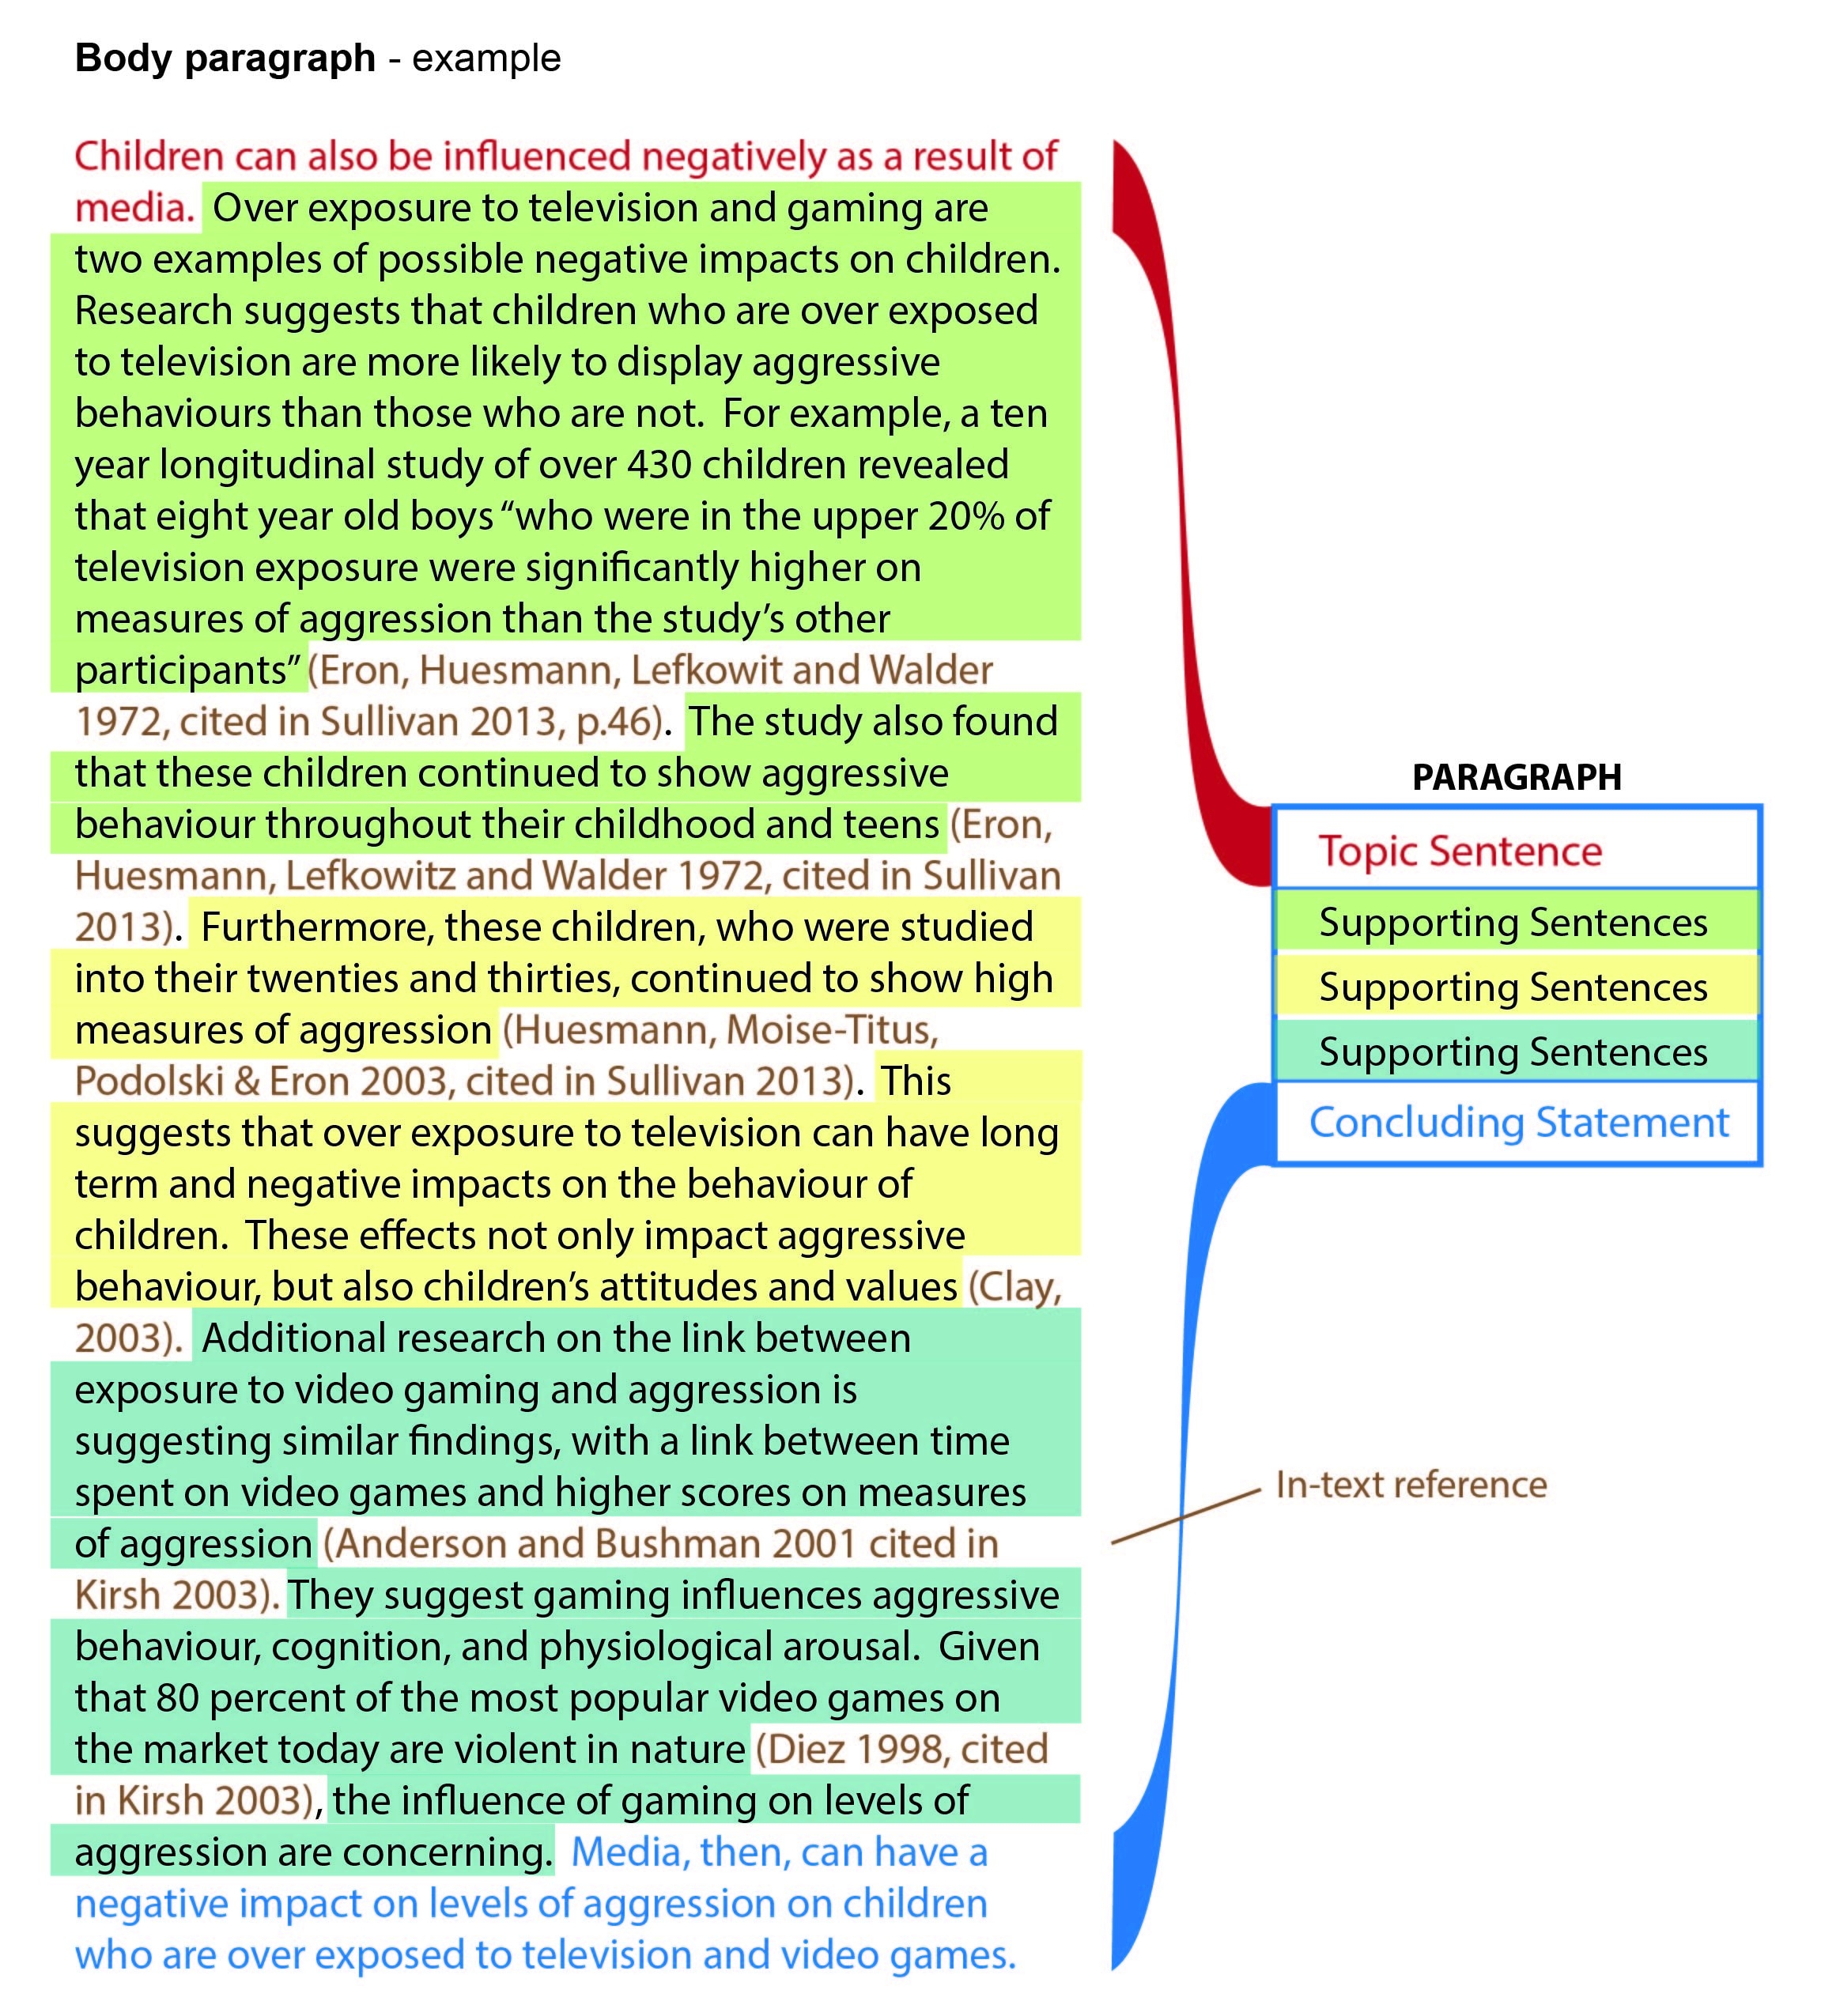 Body - How To Write An Essay - Libguides At University Of regarding Body Paragraph Example 18821